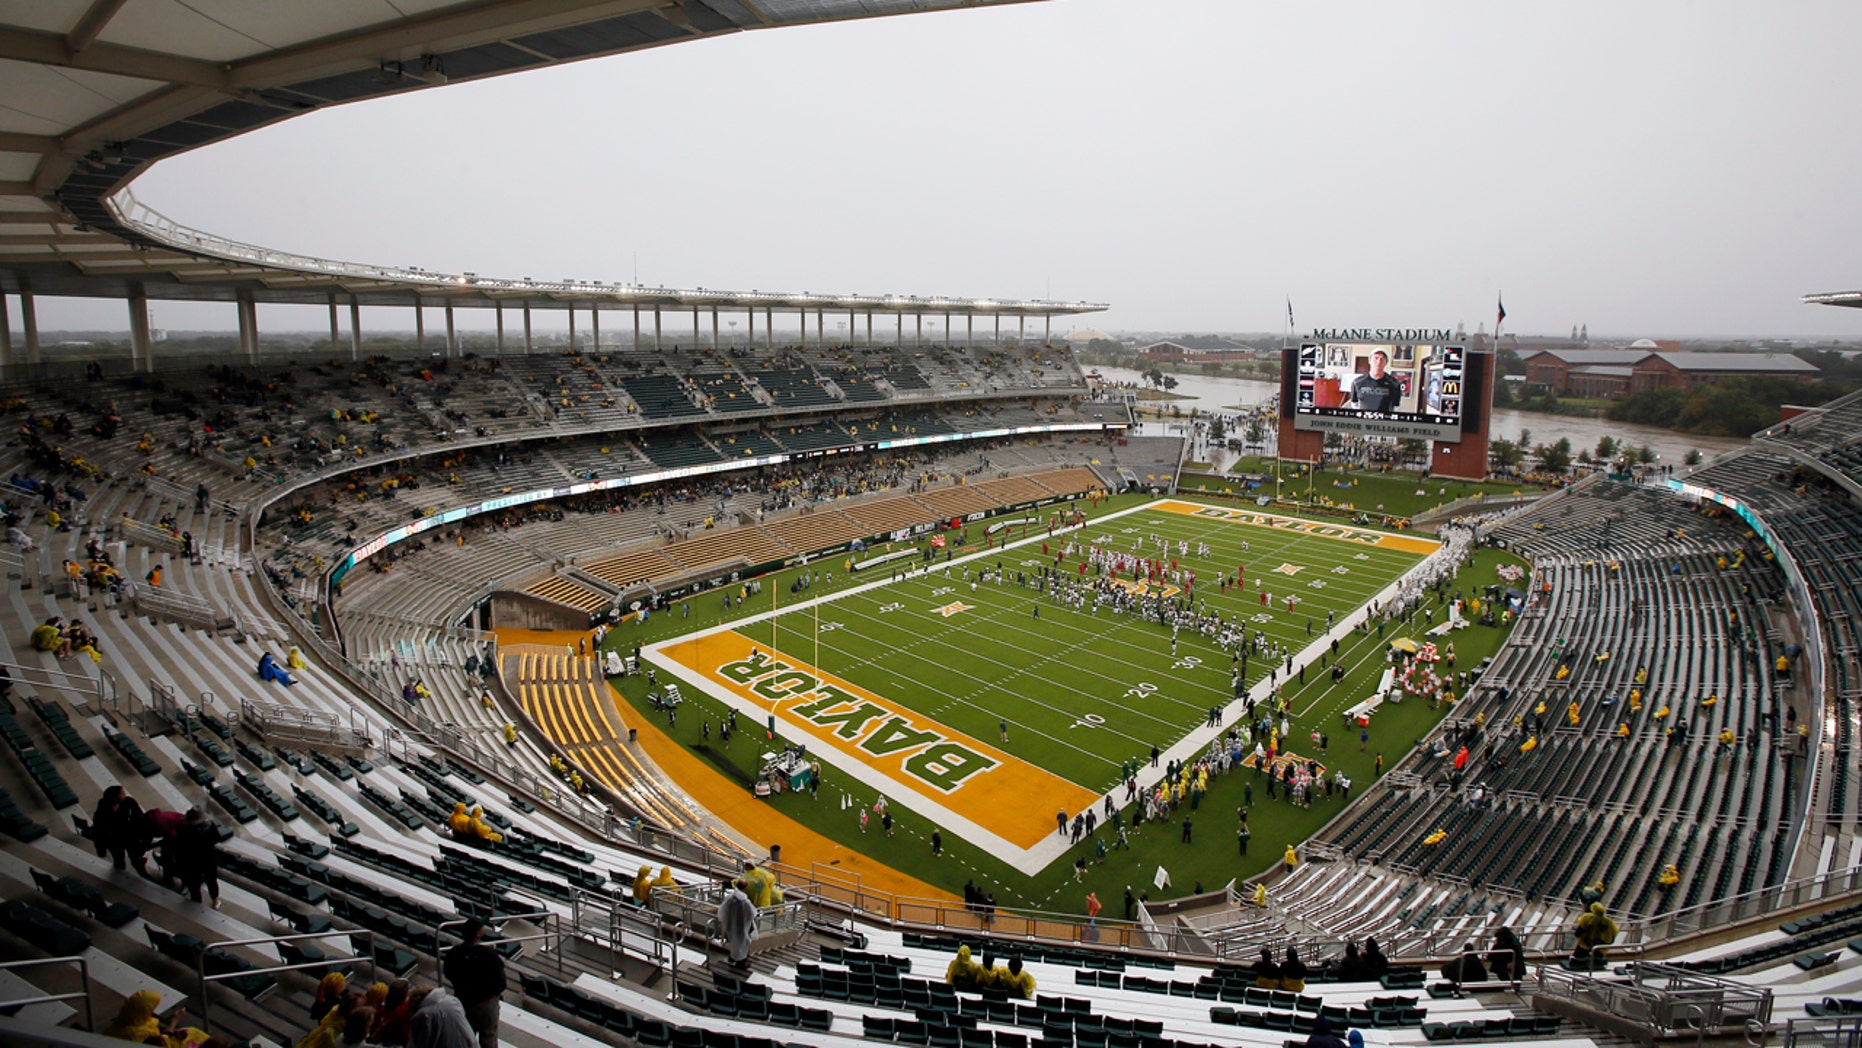 Oct. 24, 2015: A nearly empty McLane Stadium is seen minutes before kickoff between Iowa State and Baylor in an NCAA college football game in Waco, Texas.